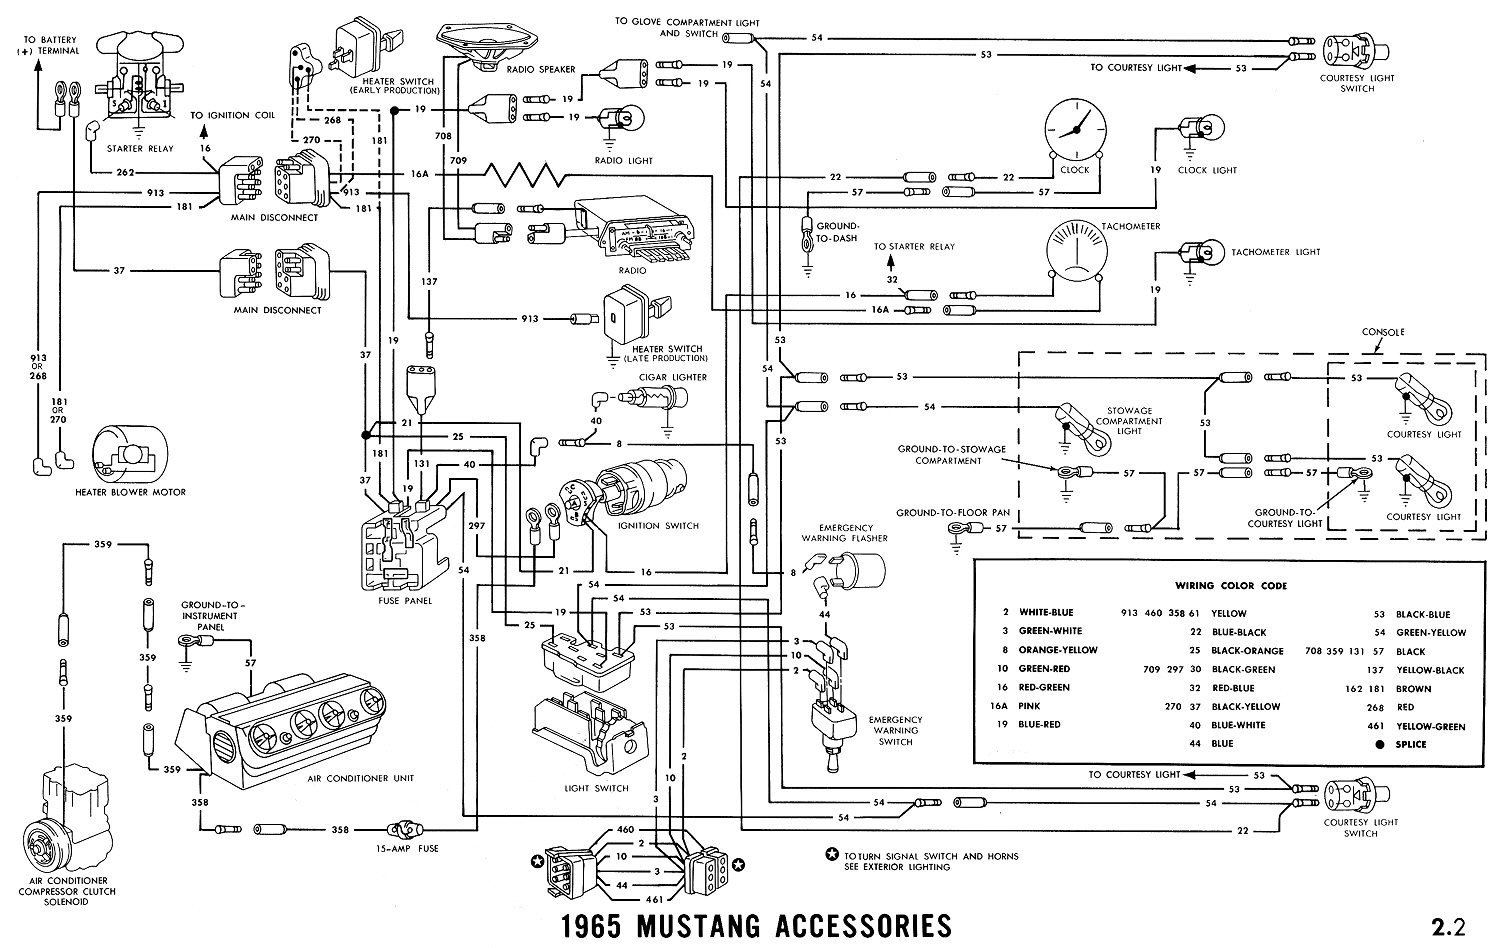 1965i 1965 mustang wiring diagrams average joe restoration 1967 mustang wiring diagram at gsmportal.co